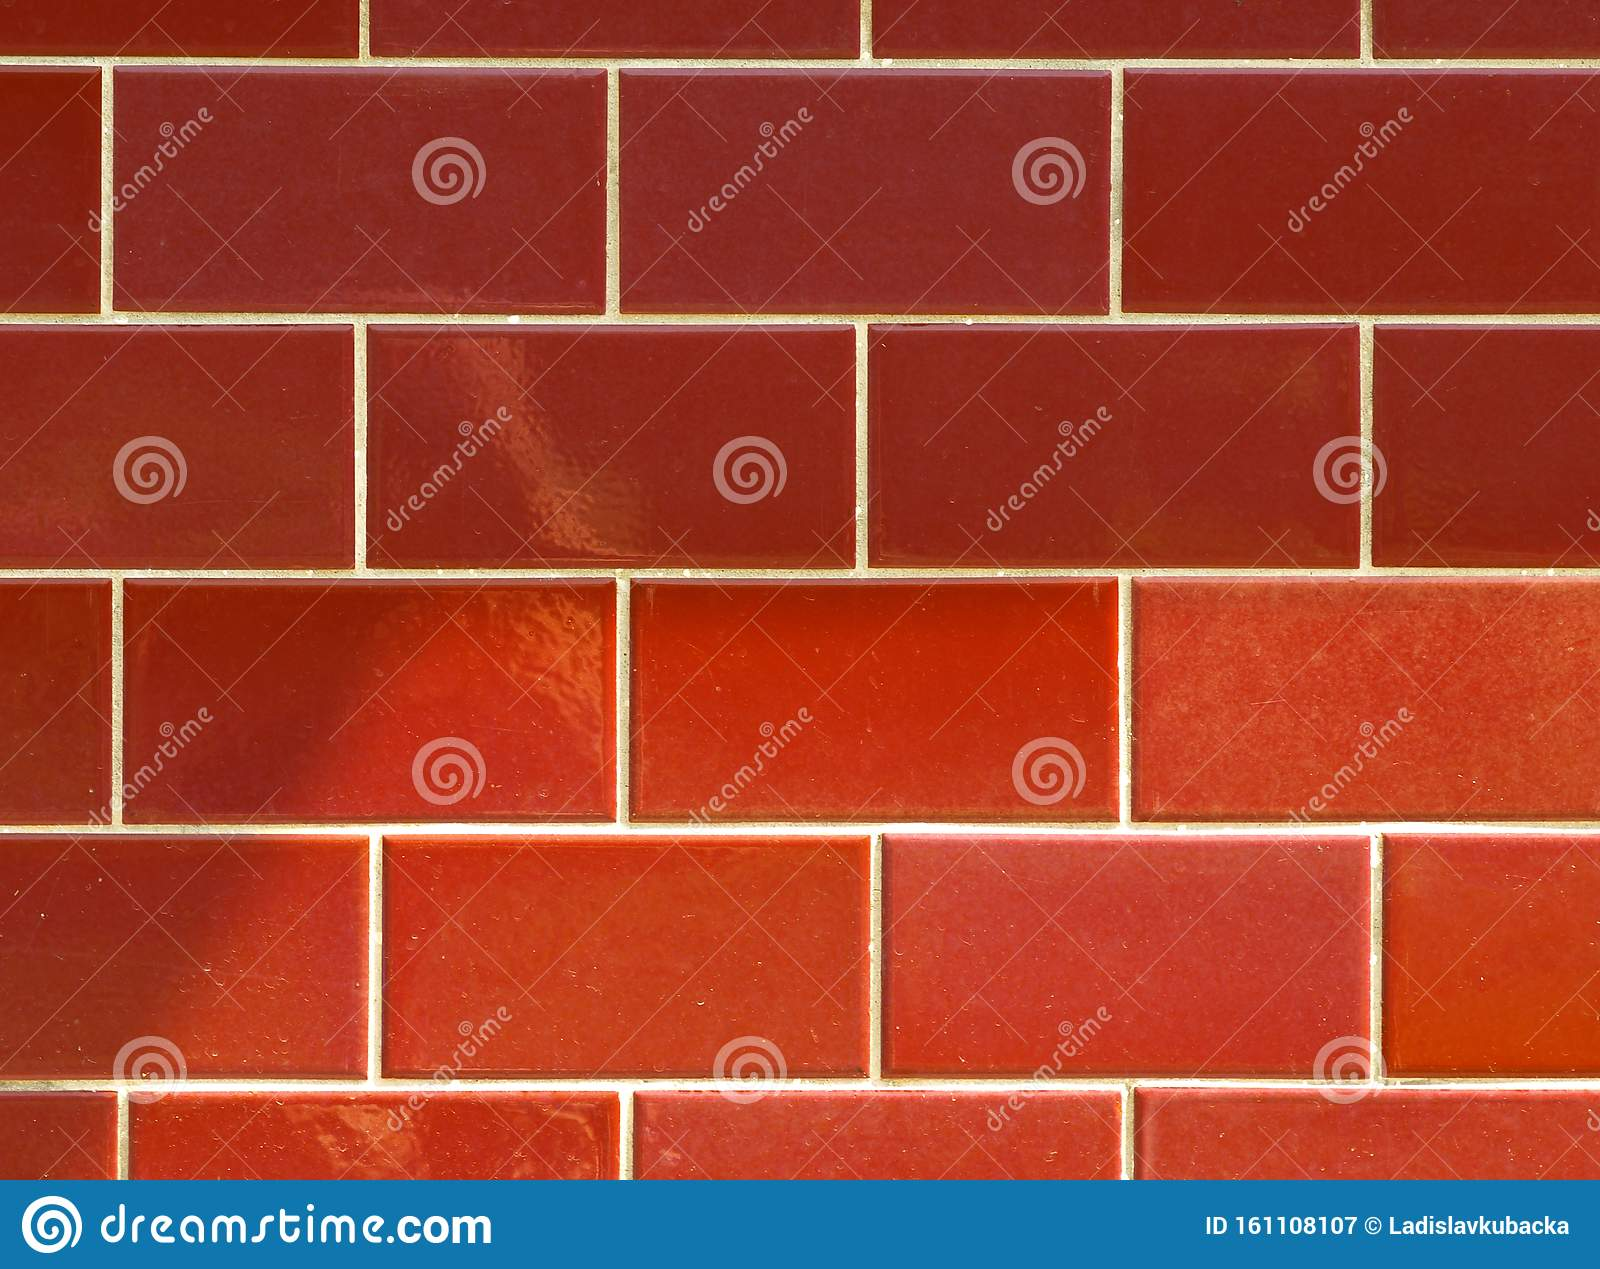 Red Ceramic Brick Tile Wall Colorful Wall Tiles Design For Bathroom Washroom And Kitchen Background From Slate Natural Stone Ti Stock Image Image Of Geometric Cement 161108107